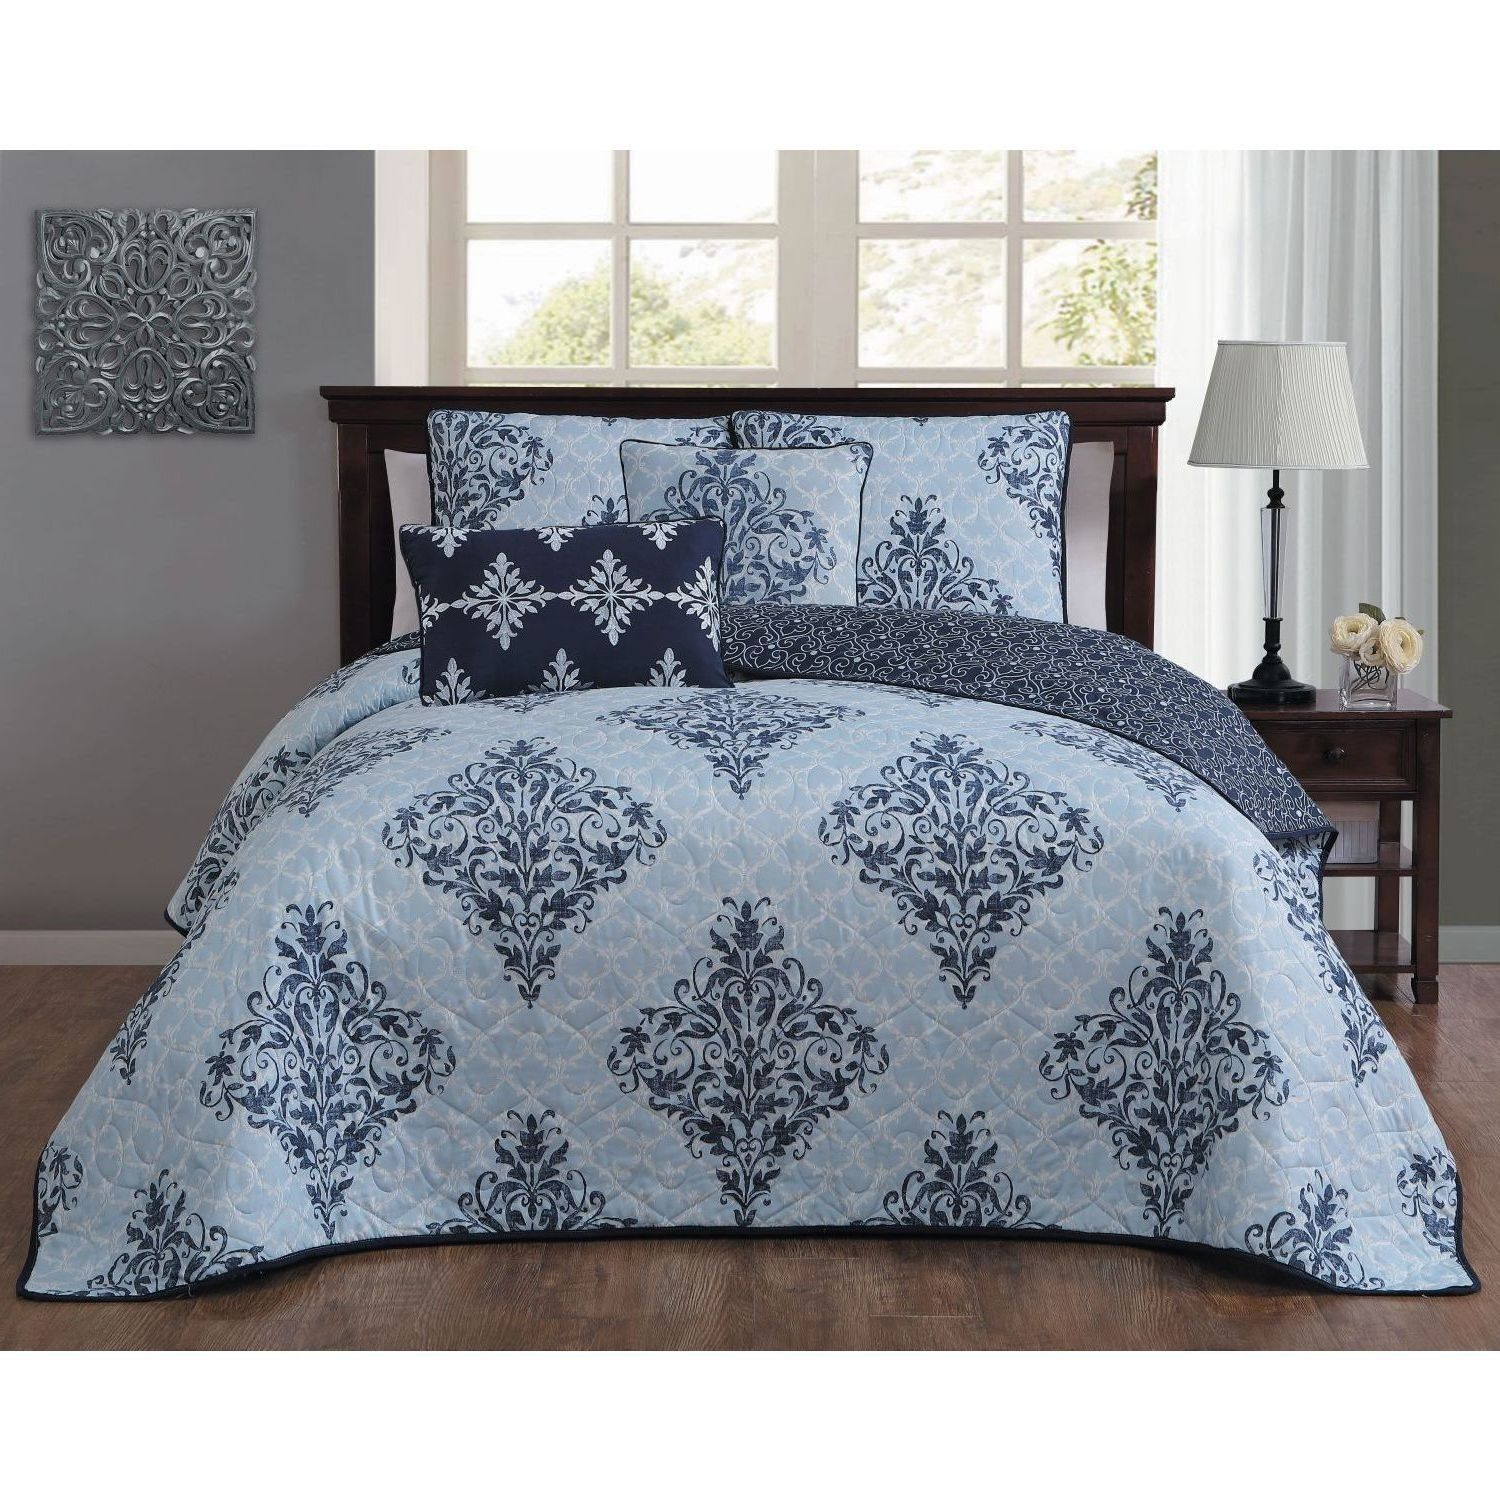 Victorian Bedding Blue Damask Queen Size Quilt Set Bohemian Motif Chic Geomectric